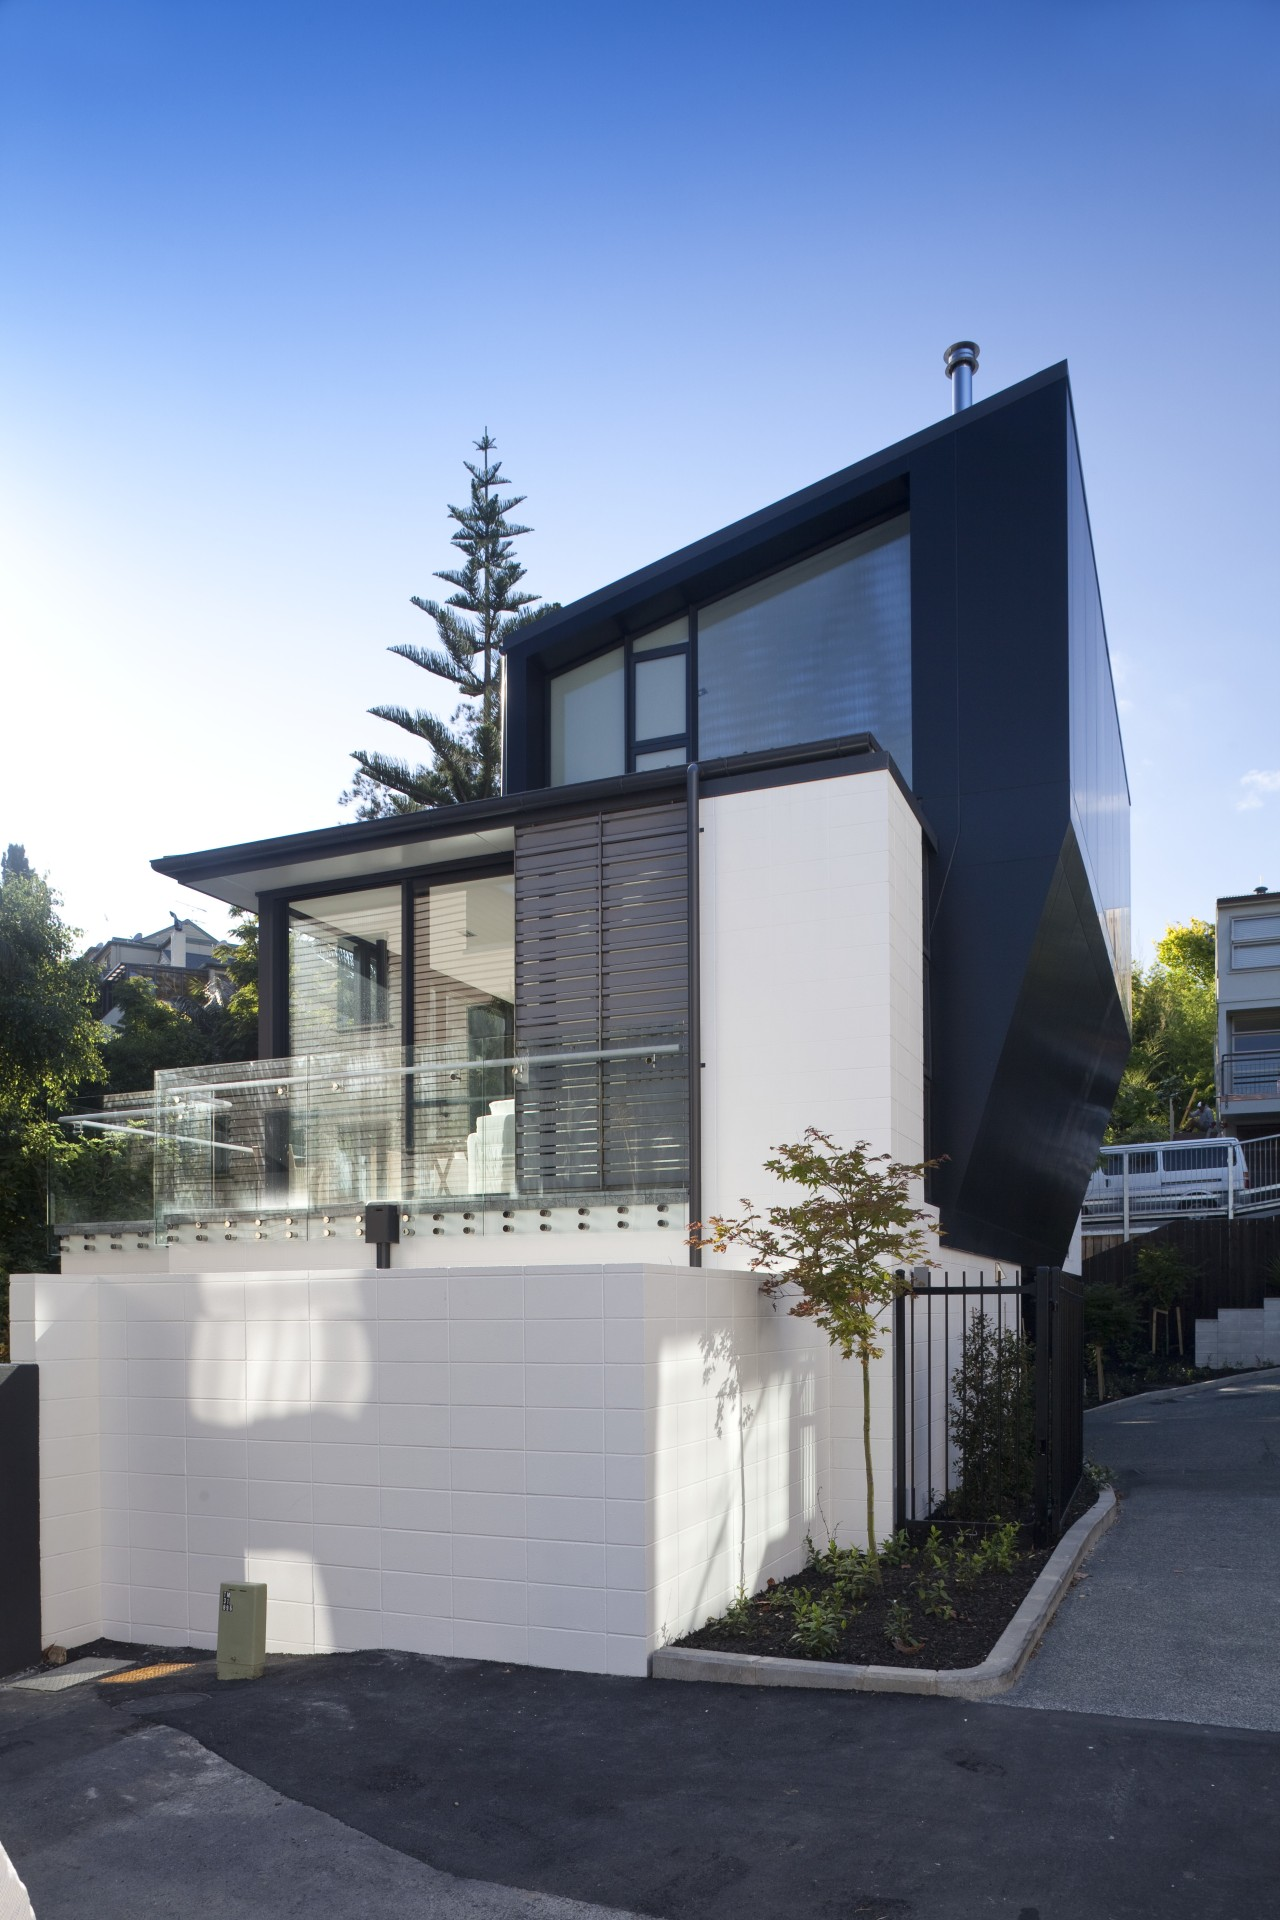 View of exterior with white and wall walls. architecture, building, elevation, facade, home, house, property, real estate, residential area